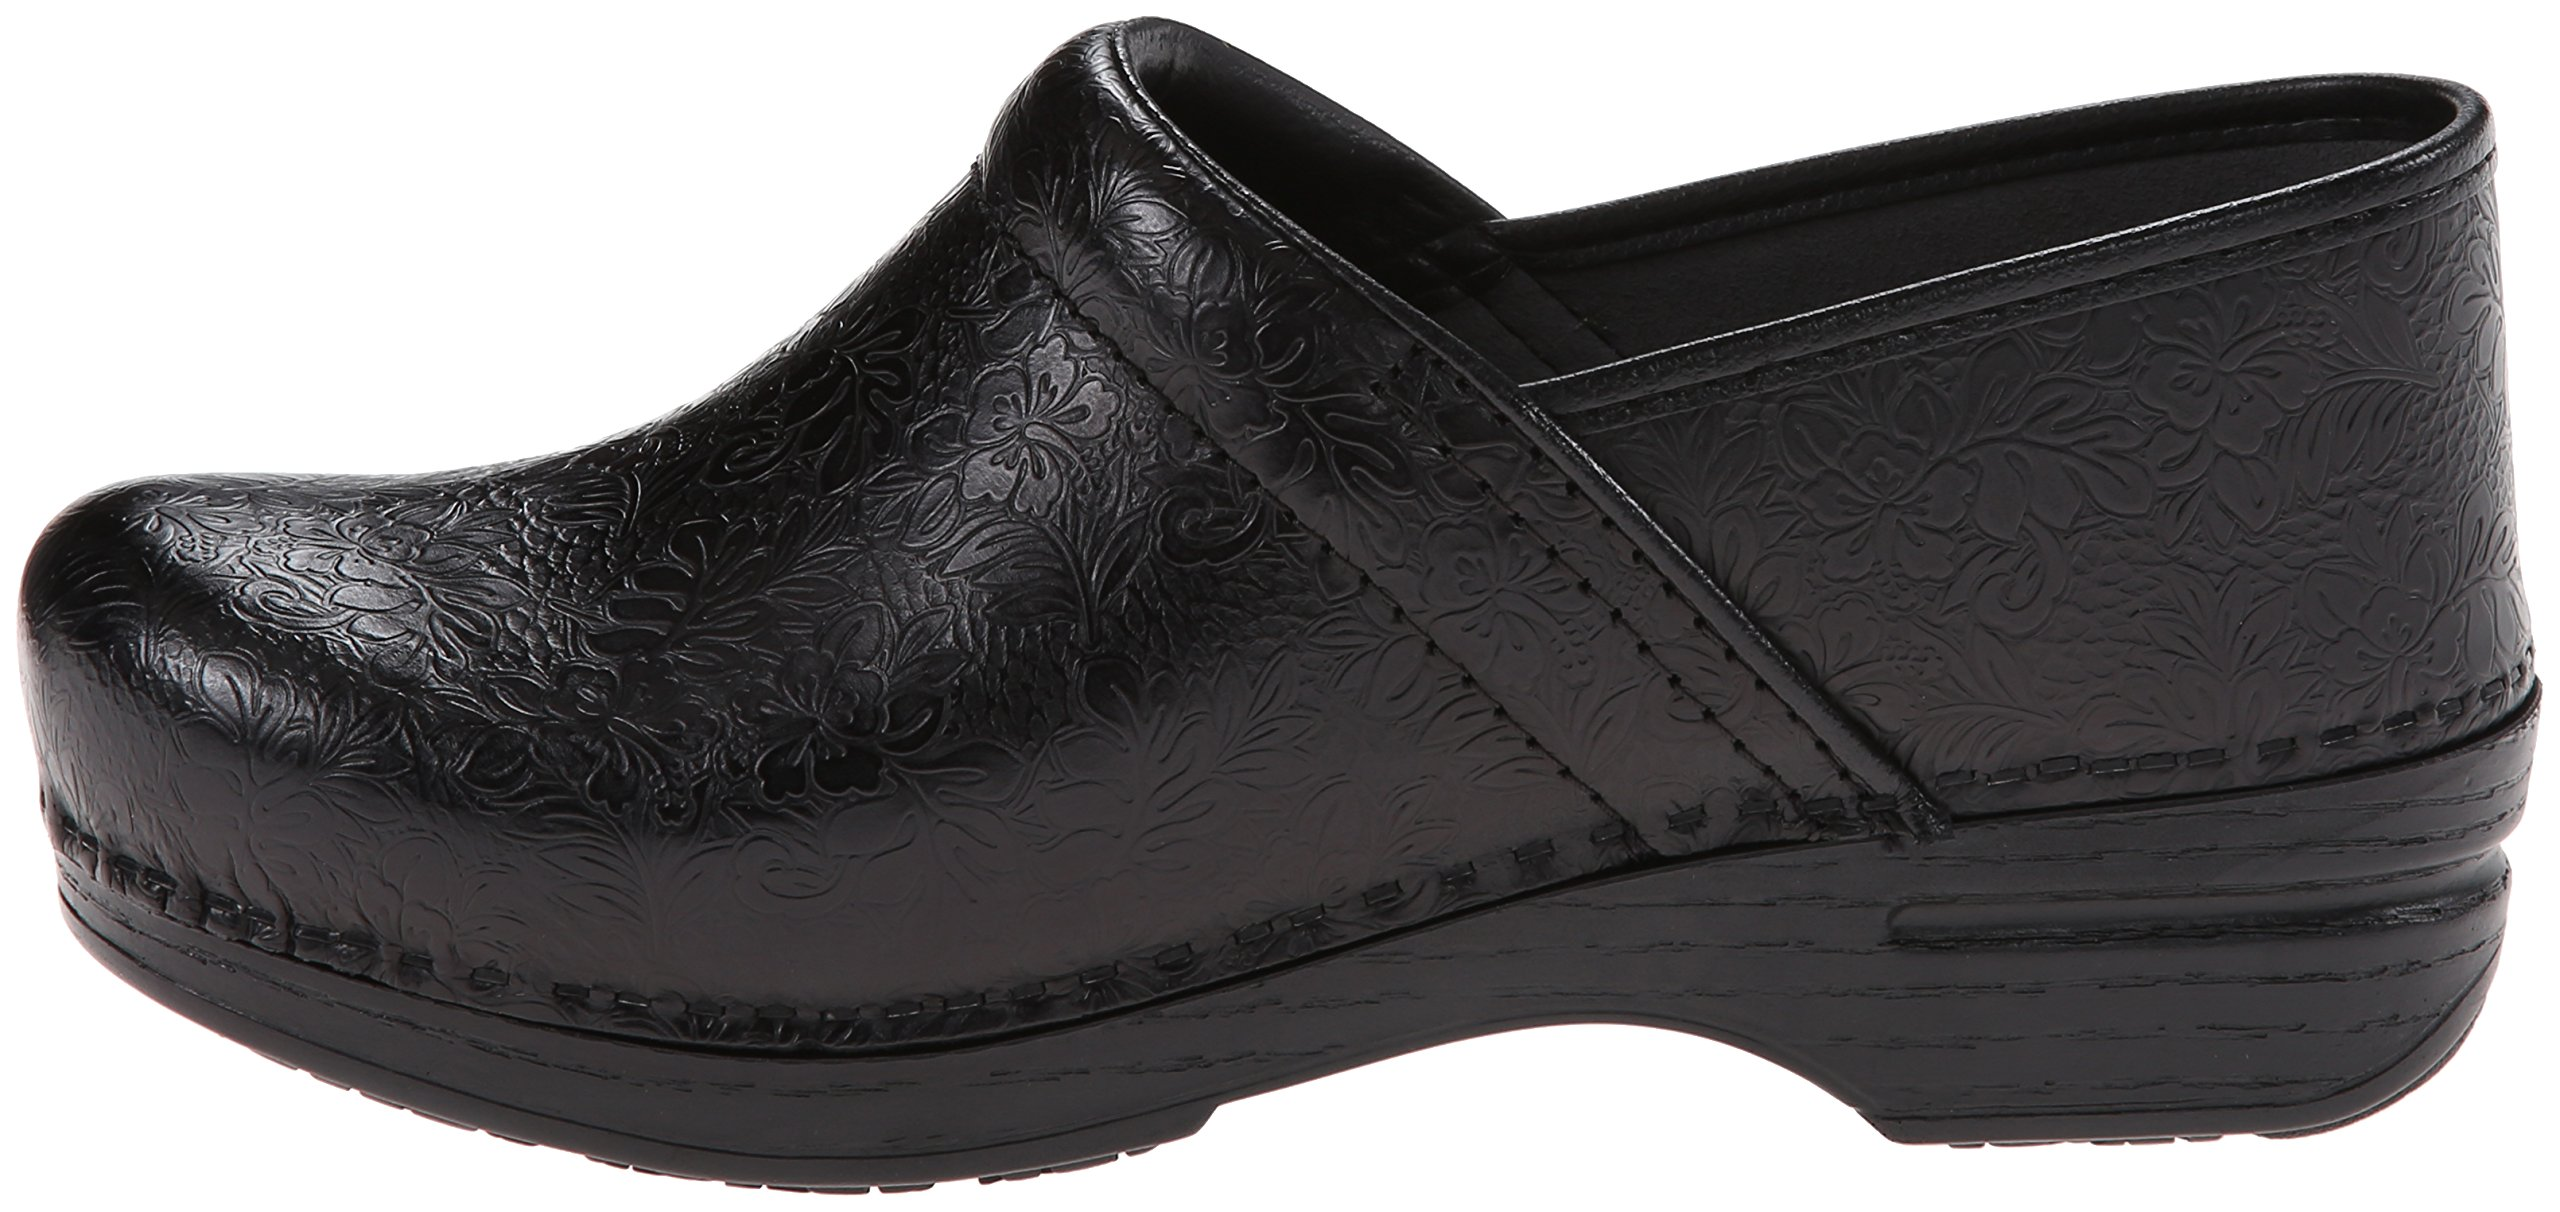 Dansko Women's Pro XP Mule,Black Floral Tooled,39 EU/8.5-9 M US by Dansko (Image #5)